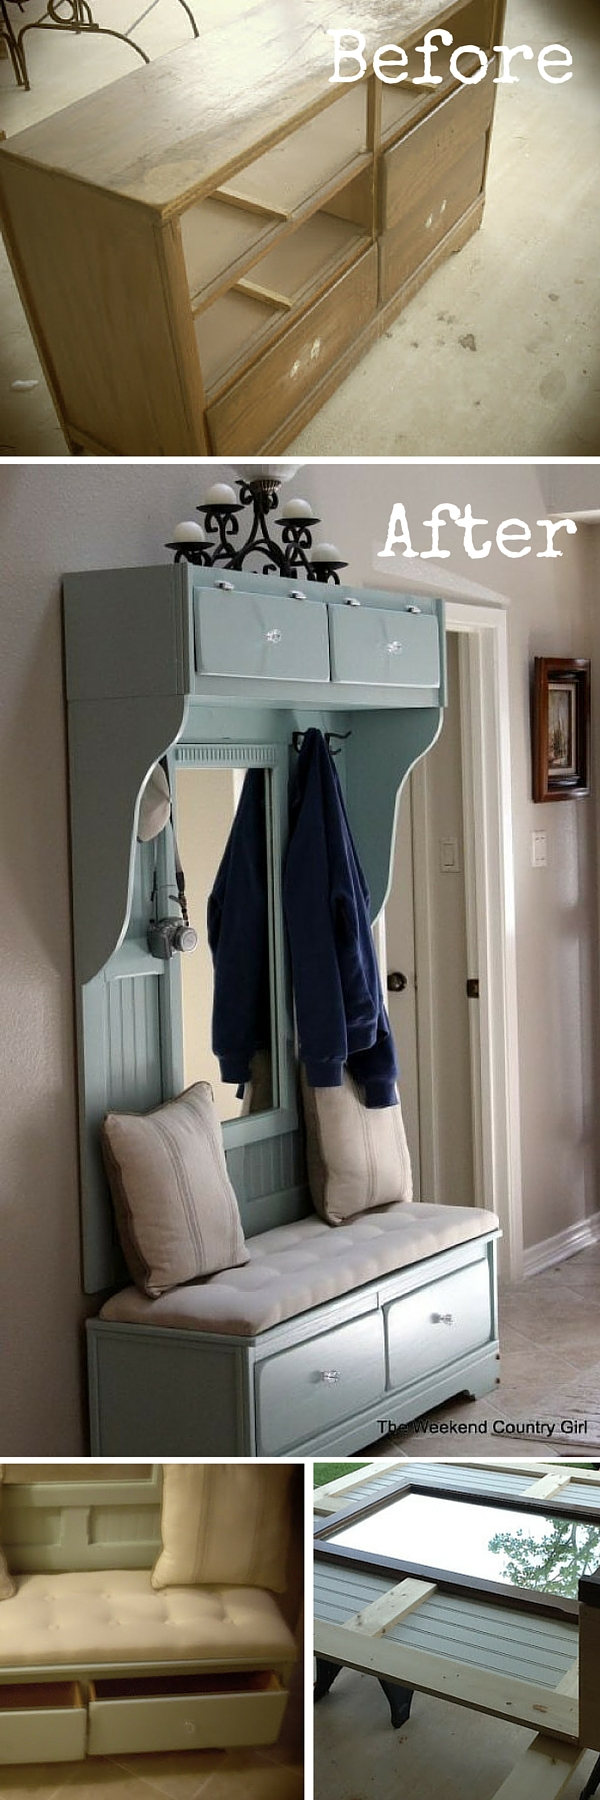 upcycled furniture upcycling reuse DIY The handy mano manomano dresser mudroom